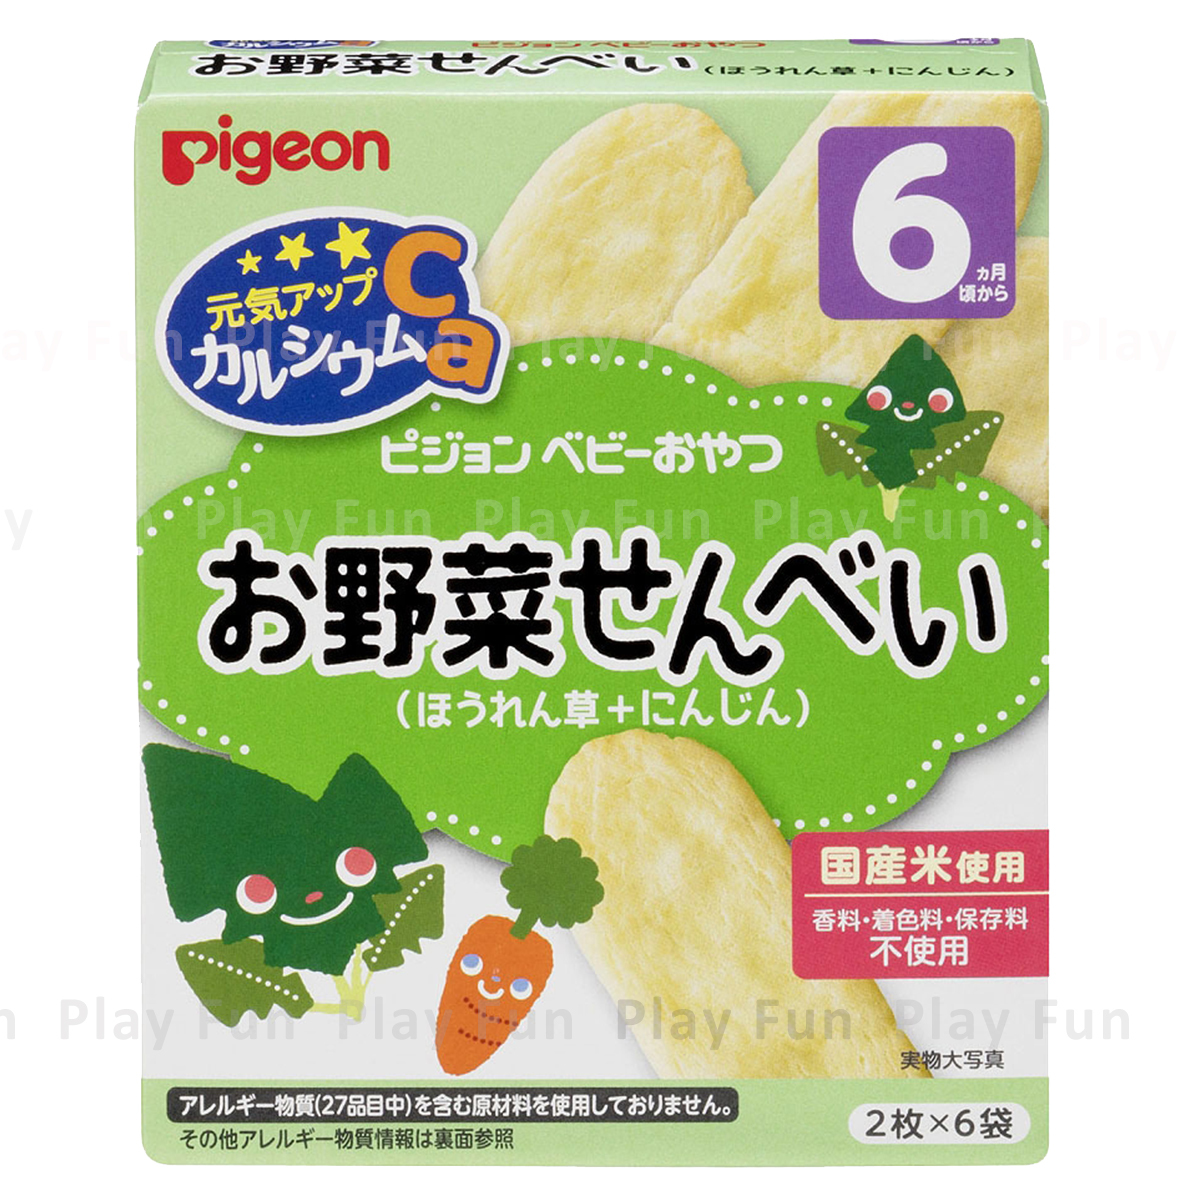 Spinach and Carrot High Calcium Finger Biscuit [For 7months old baby] (2枚×6袋) (4902508133913_1)